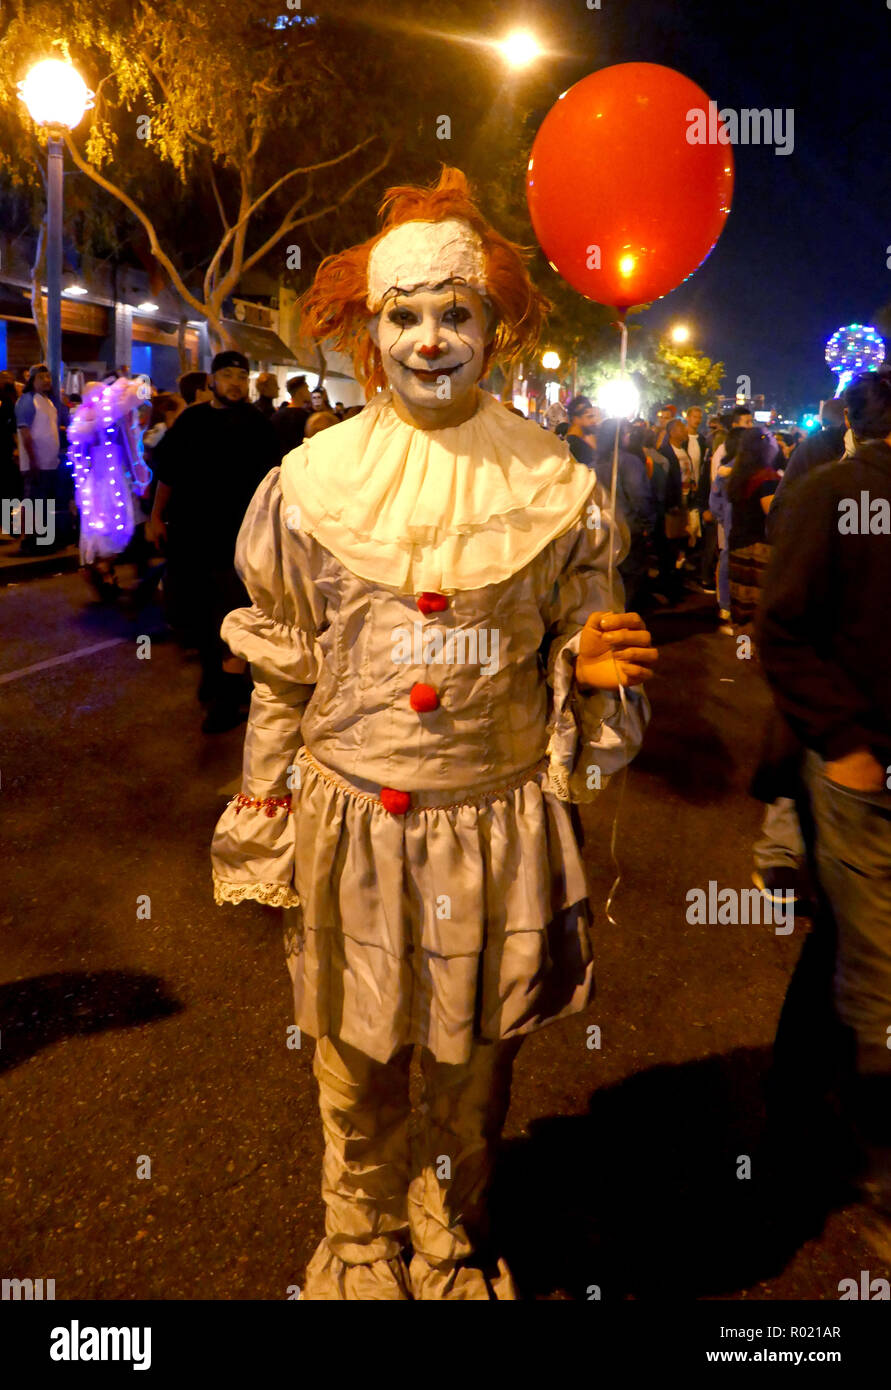 West Hollywood, USA. 31st Oct, 2018. WEST HOLLYWOOD, CA - OCTOBER 31: A general view of atmosphere of Pennywise Clown from 'It' on October 31, 2018 at West Hollywood Halloween Caranval in West Hollywood, California. Credit: Barry King/Alamy Live News - Stock Image